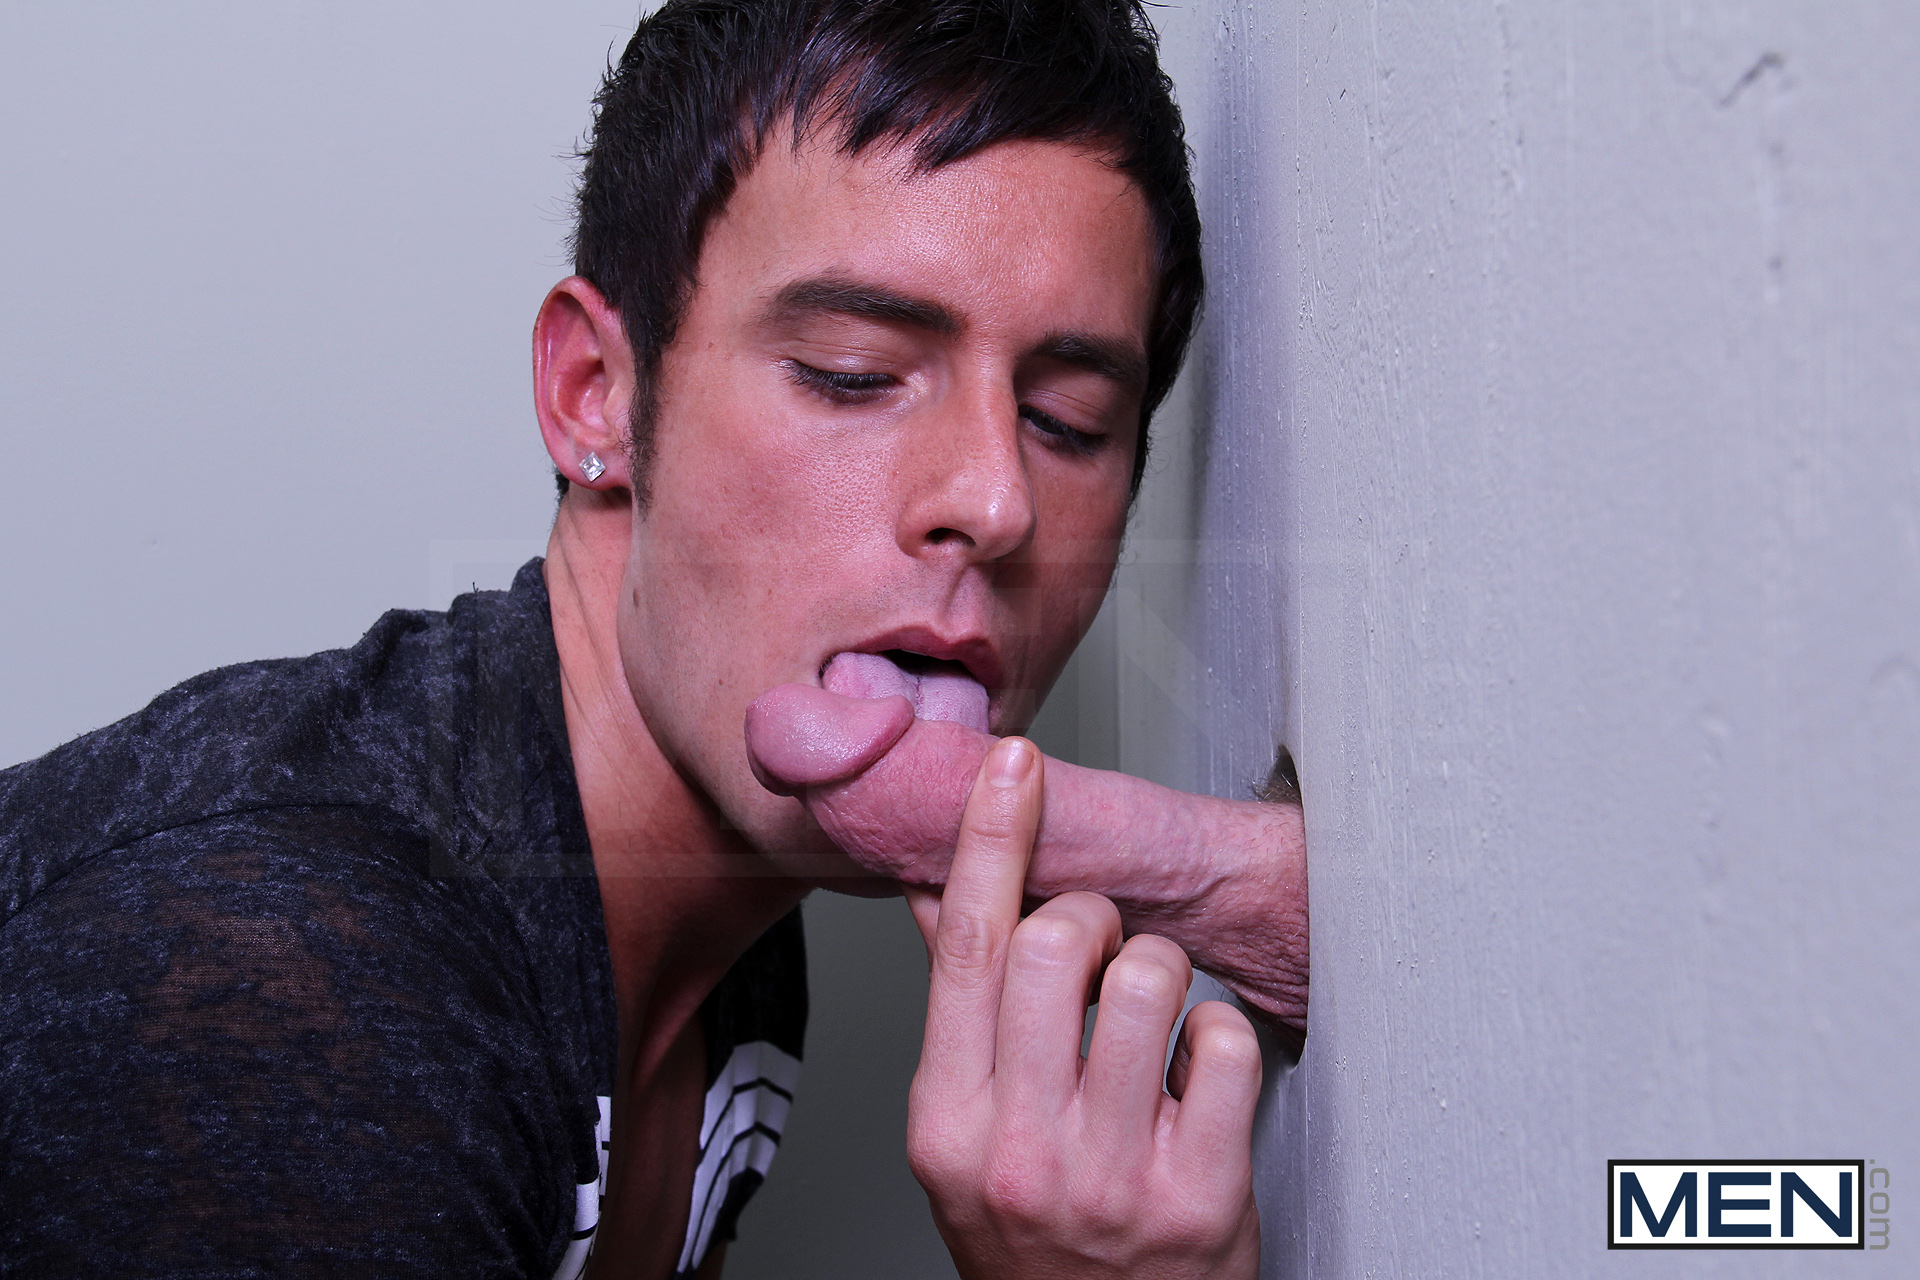 Gay Black Cock Gloryhole in gloryhole naked men sites — men getting their dick sucked or ass